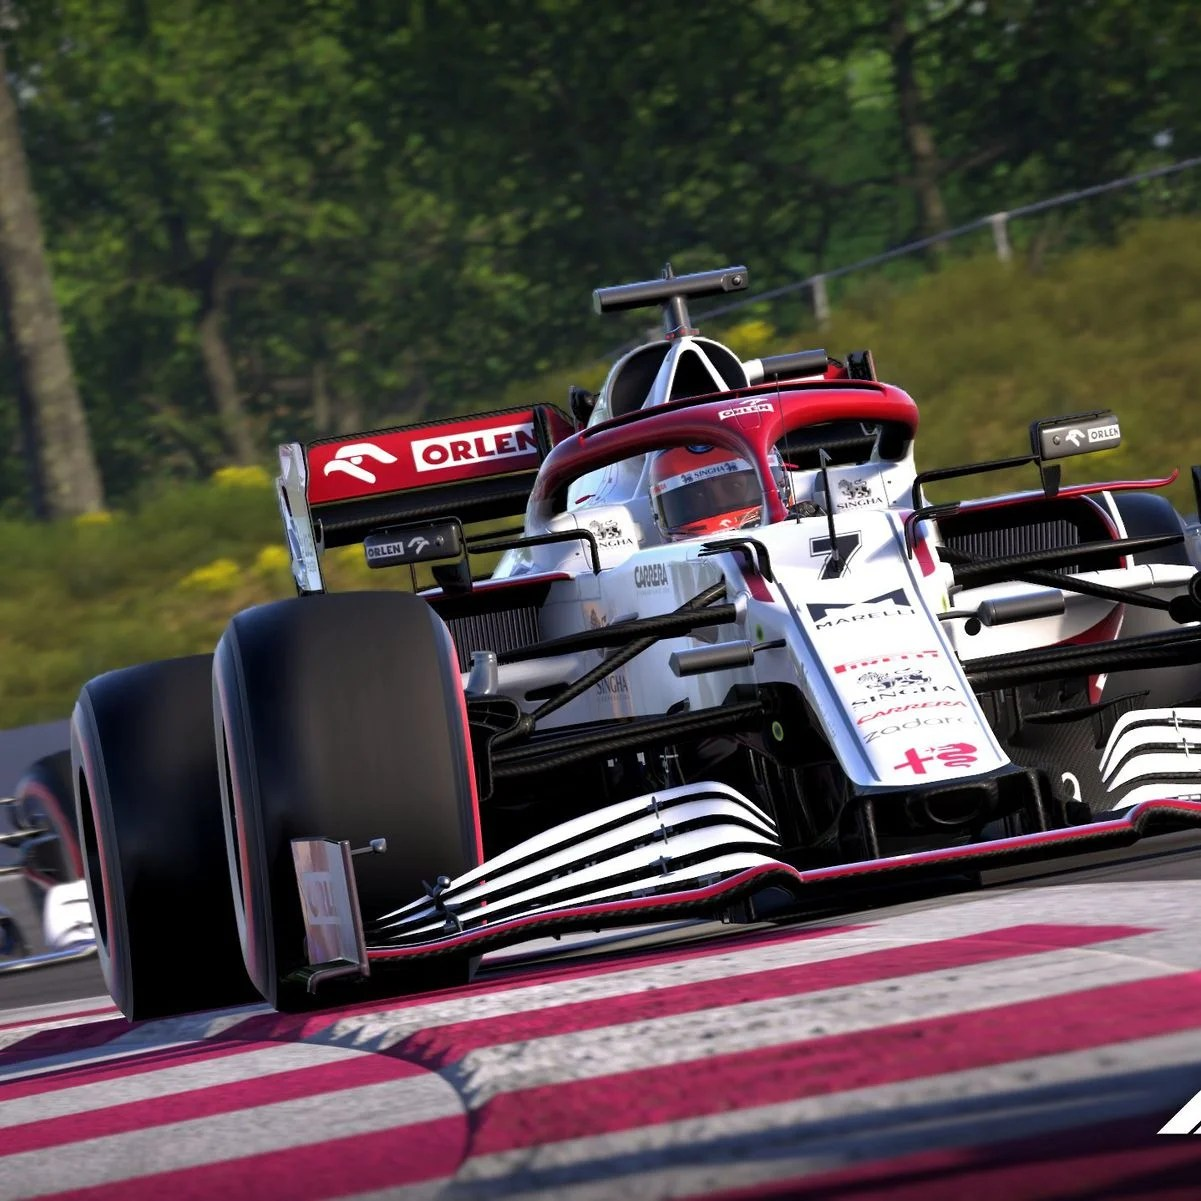 F1 2021 Ps5 Release Date : F1 2021 Game Release Date Cars ...